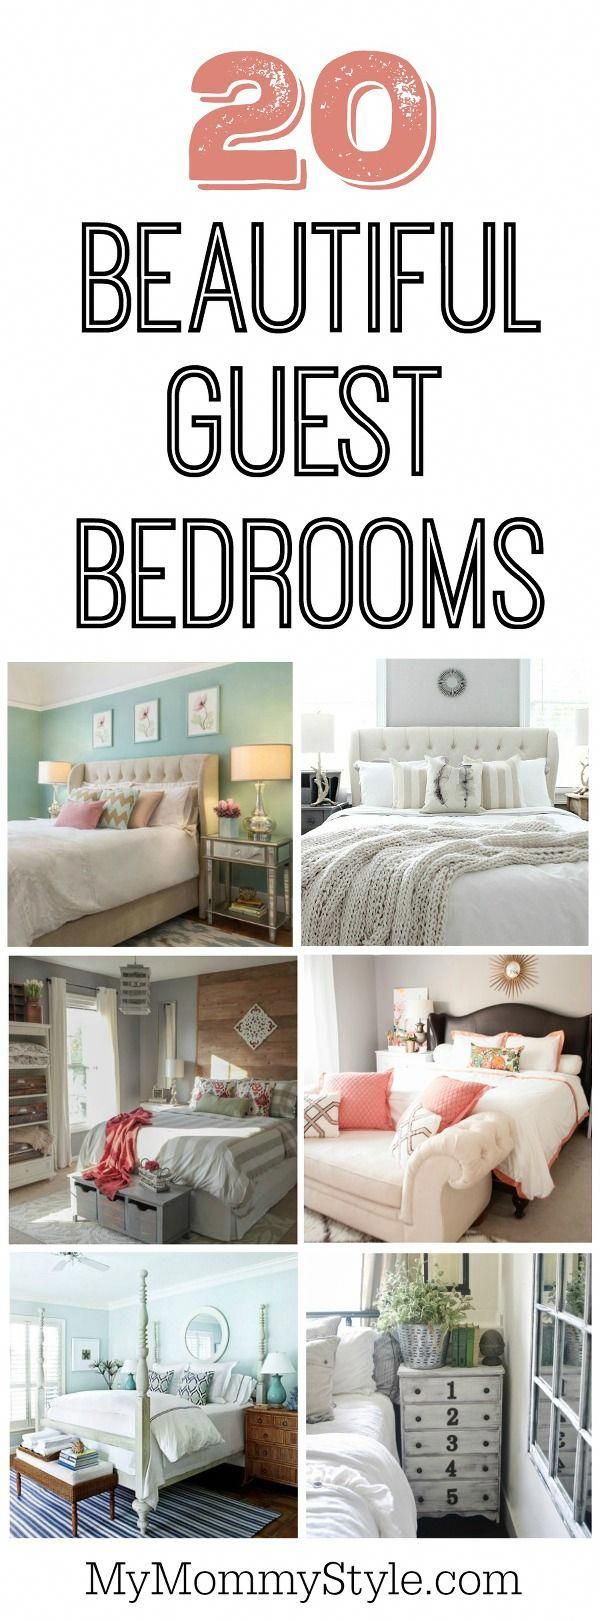 Charming Bedroom Ideas, Amazing weekend home decor tactic and inspirations. Attempt the pin image fb7344c8d56a2f62d7fb6c814fd9efde , found with diy be…